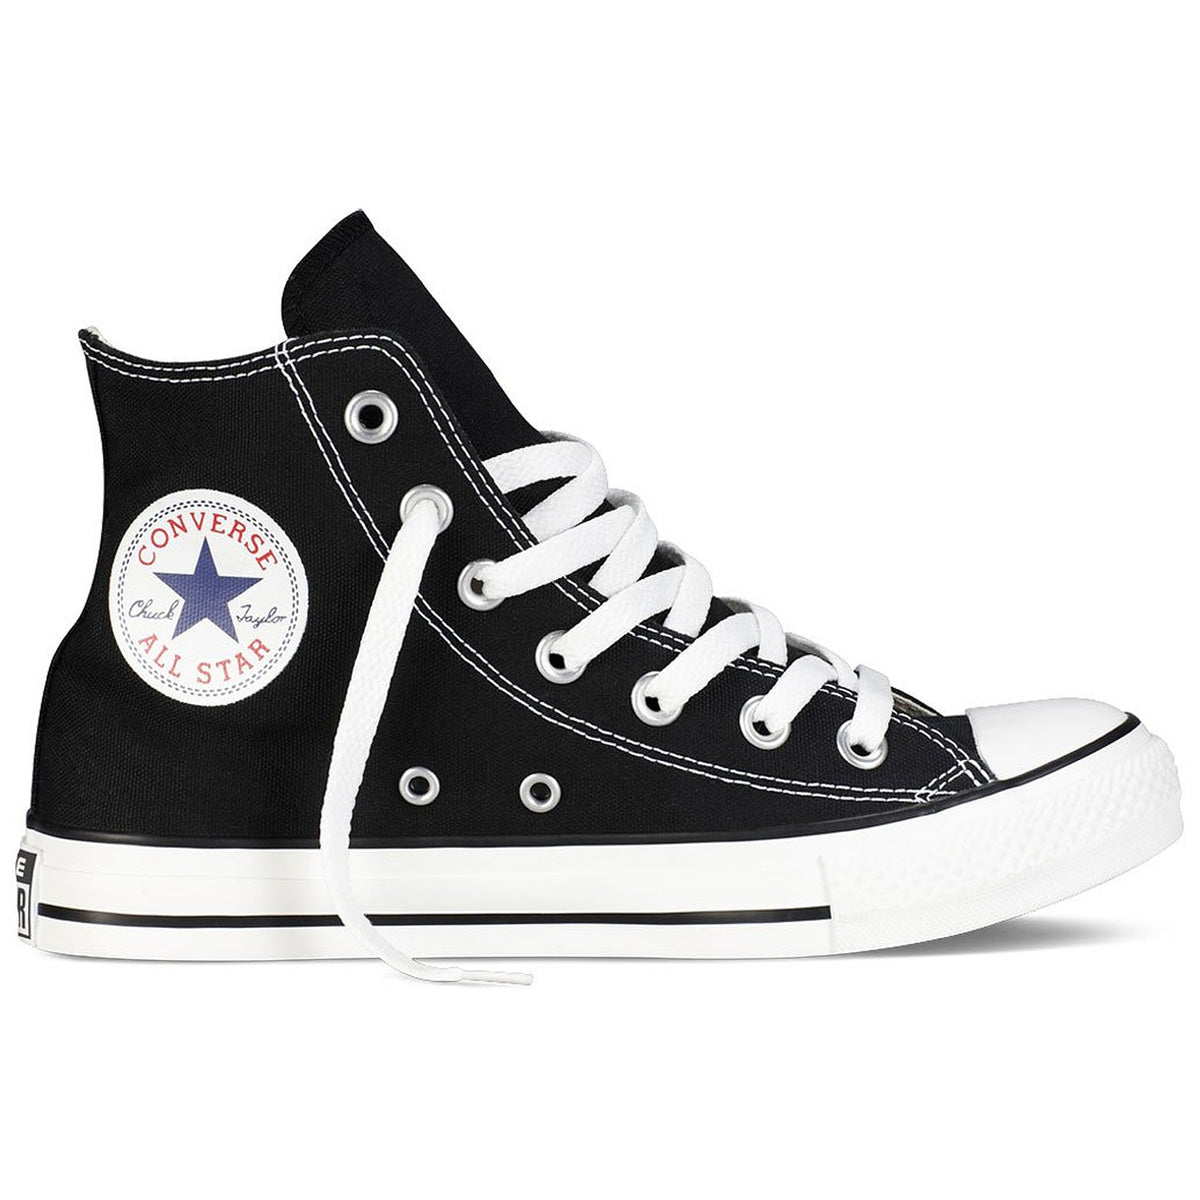 e7f8640f3b32 Converse Unisex Chuck Taylor All Star High‑Top Sneakers Optic Black